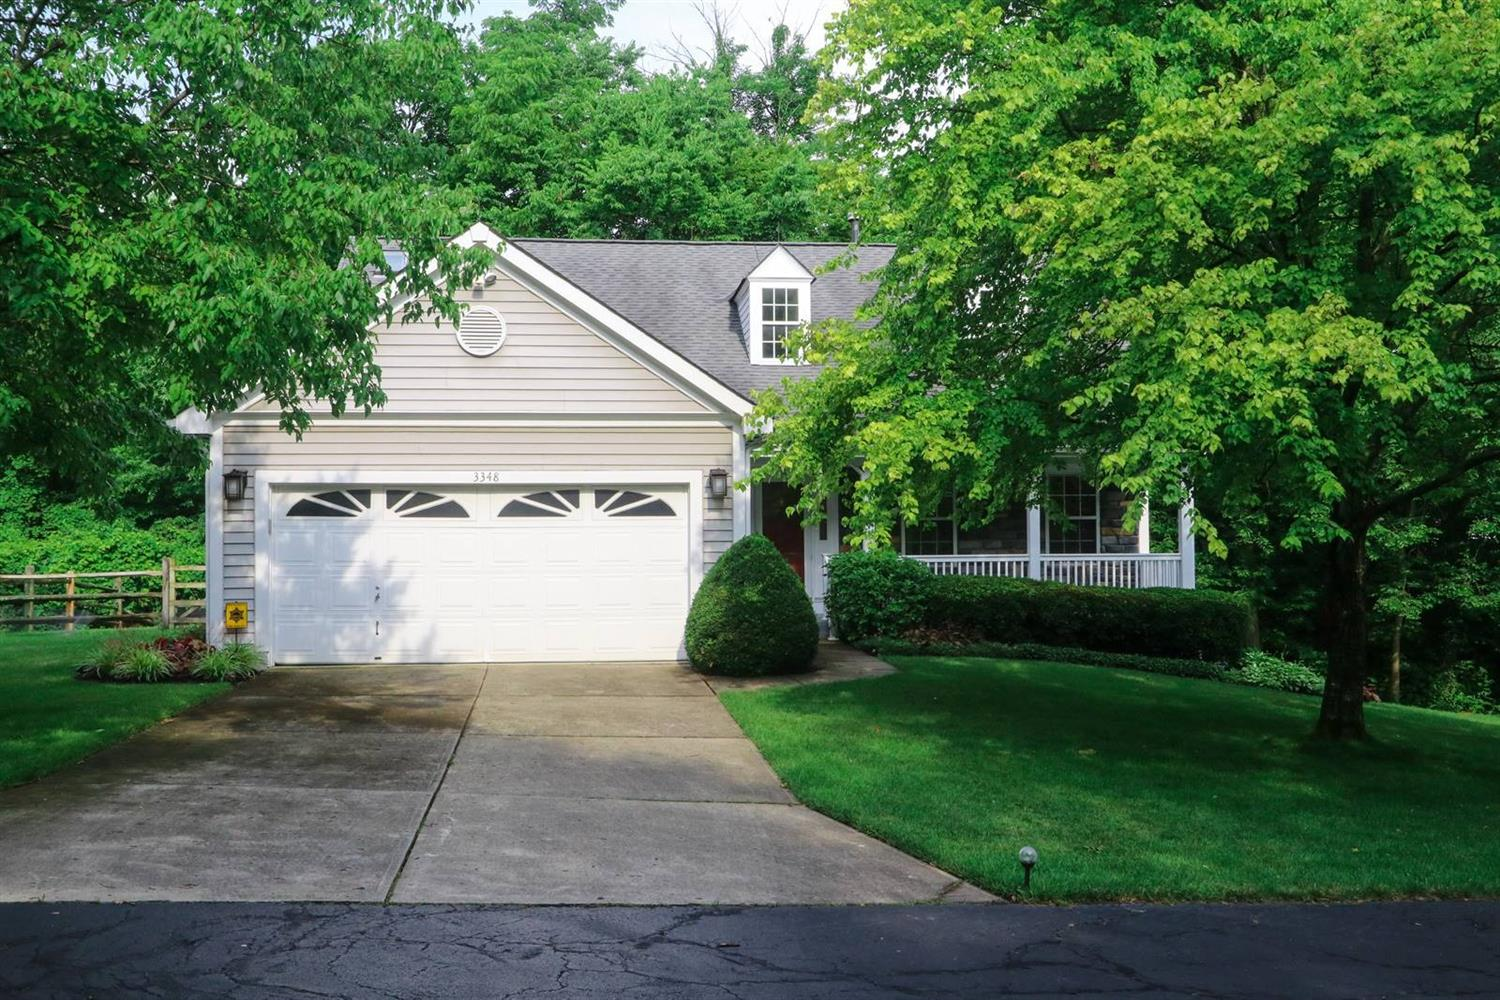 Property for sale at 3348 Woodside Drive, Fairfield,  Ohio 45014